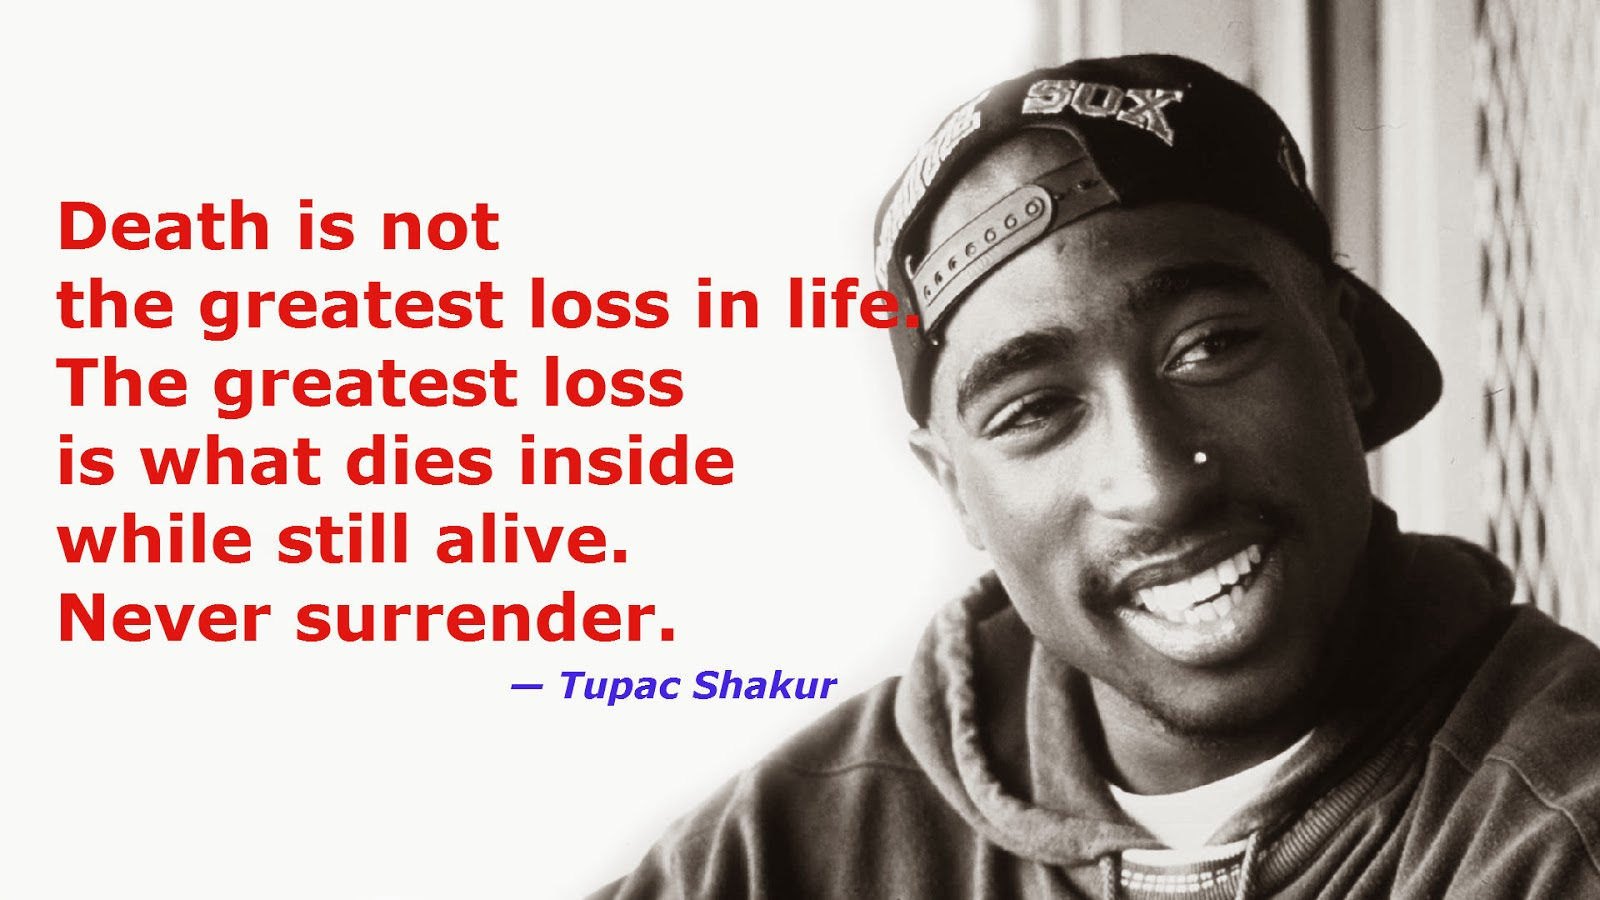 Move On Tupac Quote About Life